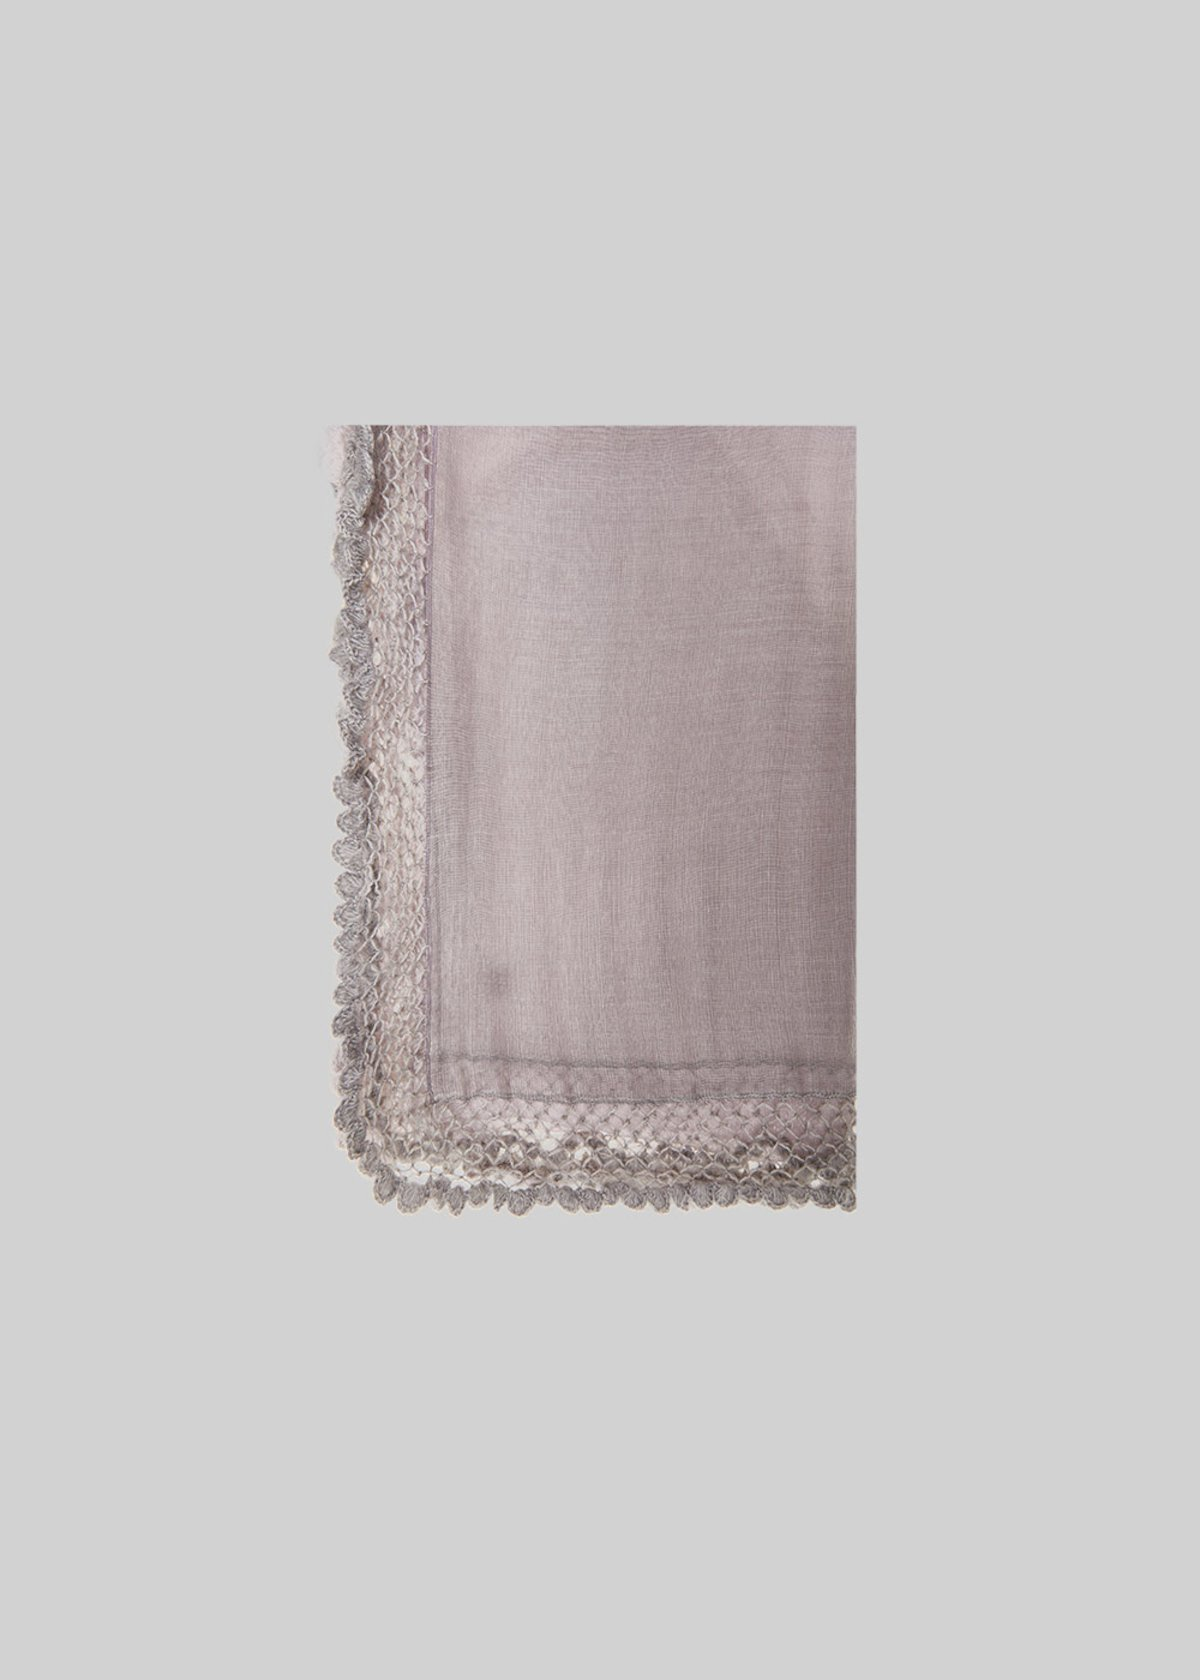 Sche scarf with wool ruffles detail - Mousse / Onion - Woman - Category image